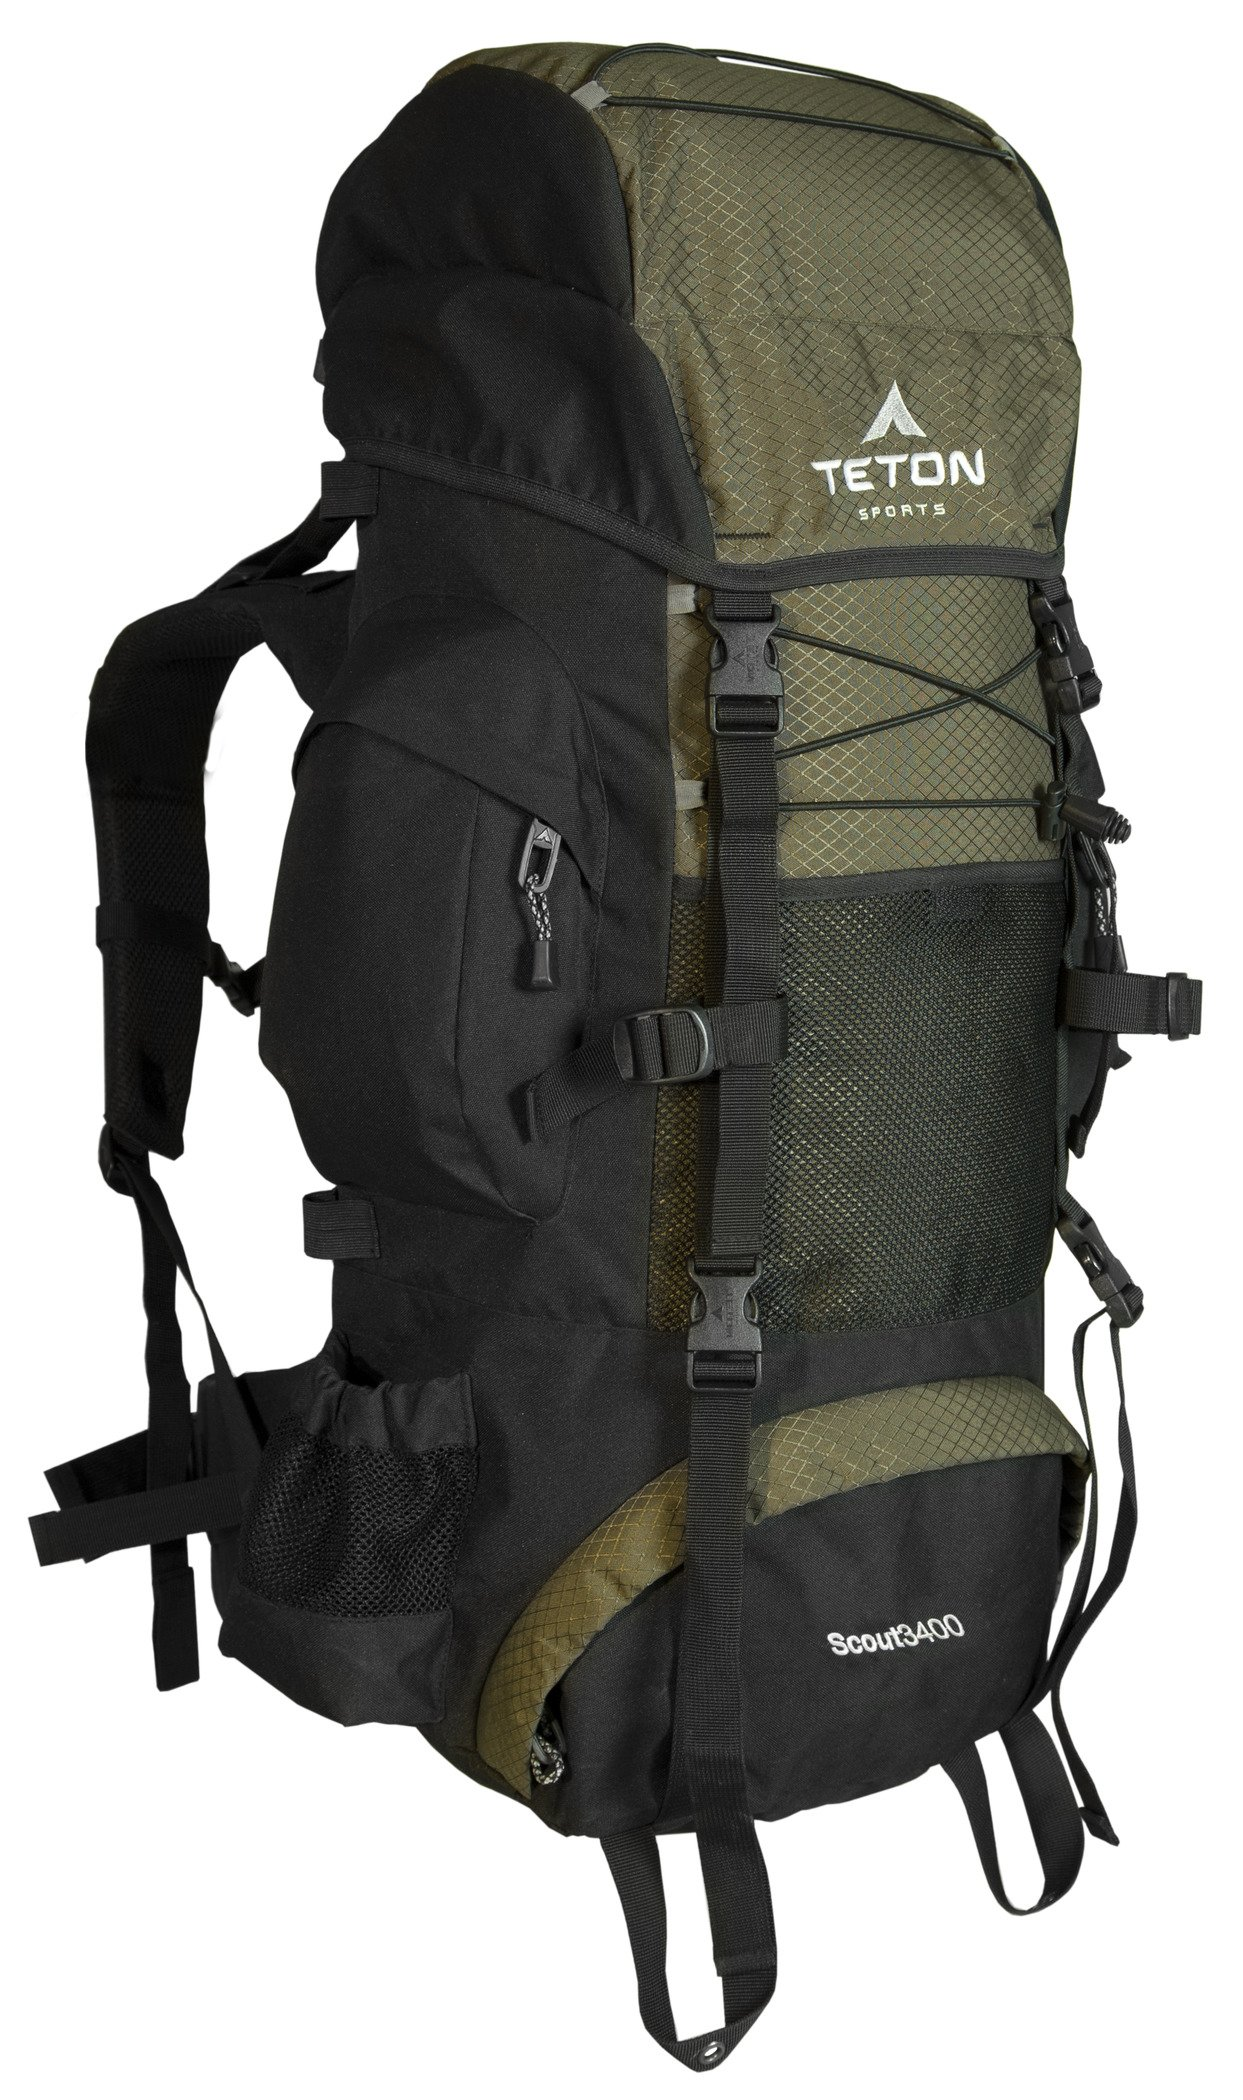 TETON Sports Scout 3400 Internal Frame Backpack; High Performance Backpack for Backpacking, Hiking, Camping